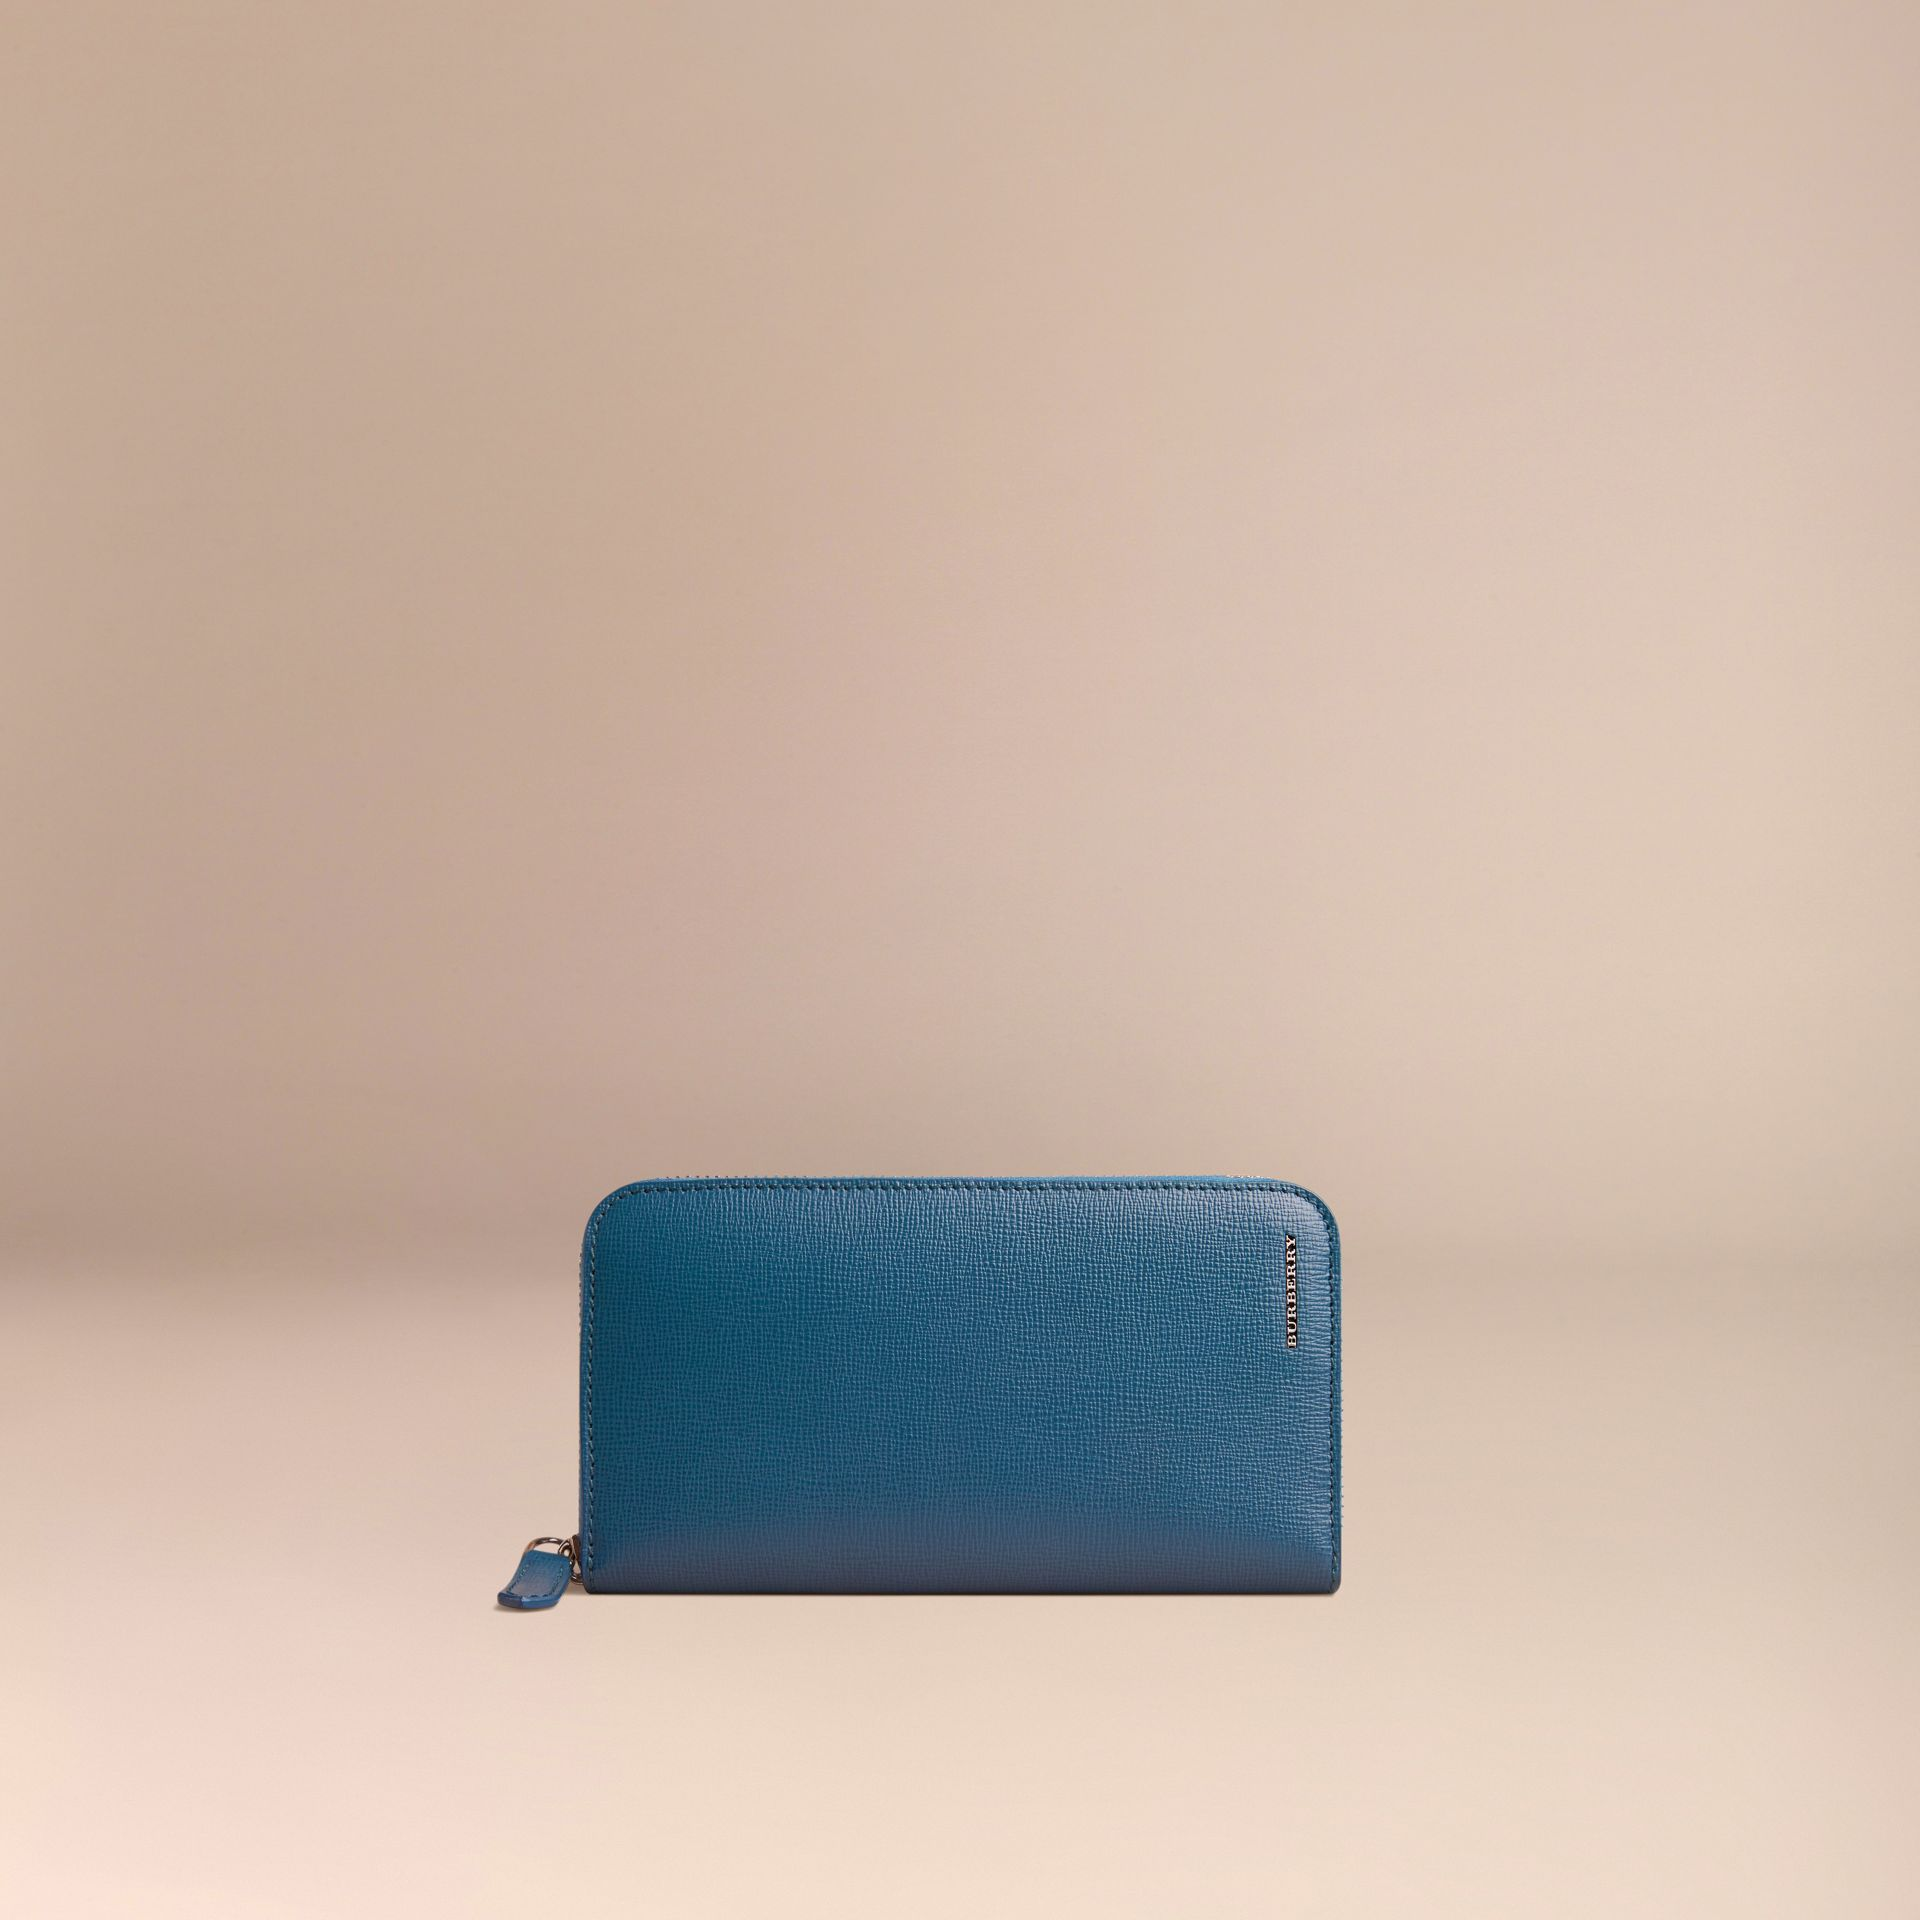 Mineral blue London Leather Ziparound Wallet Mineral Blue - gallery image 3